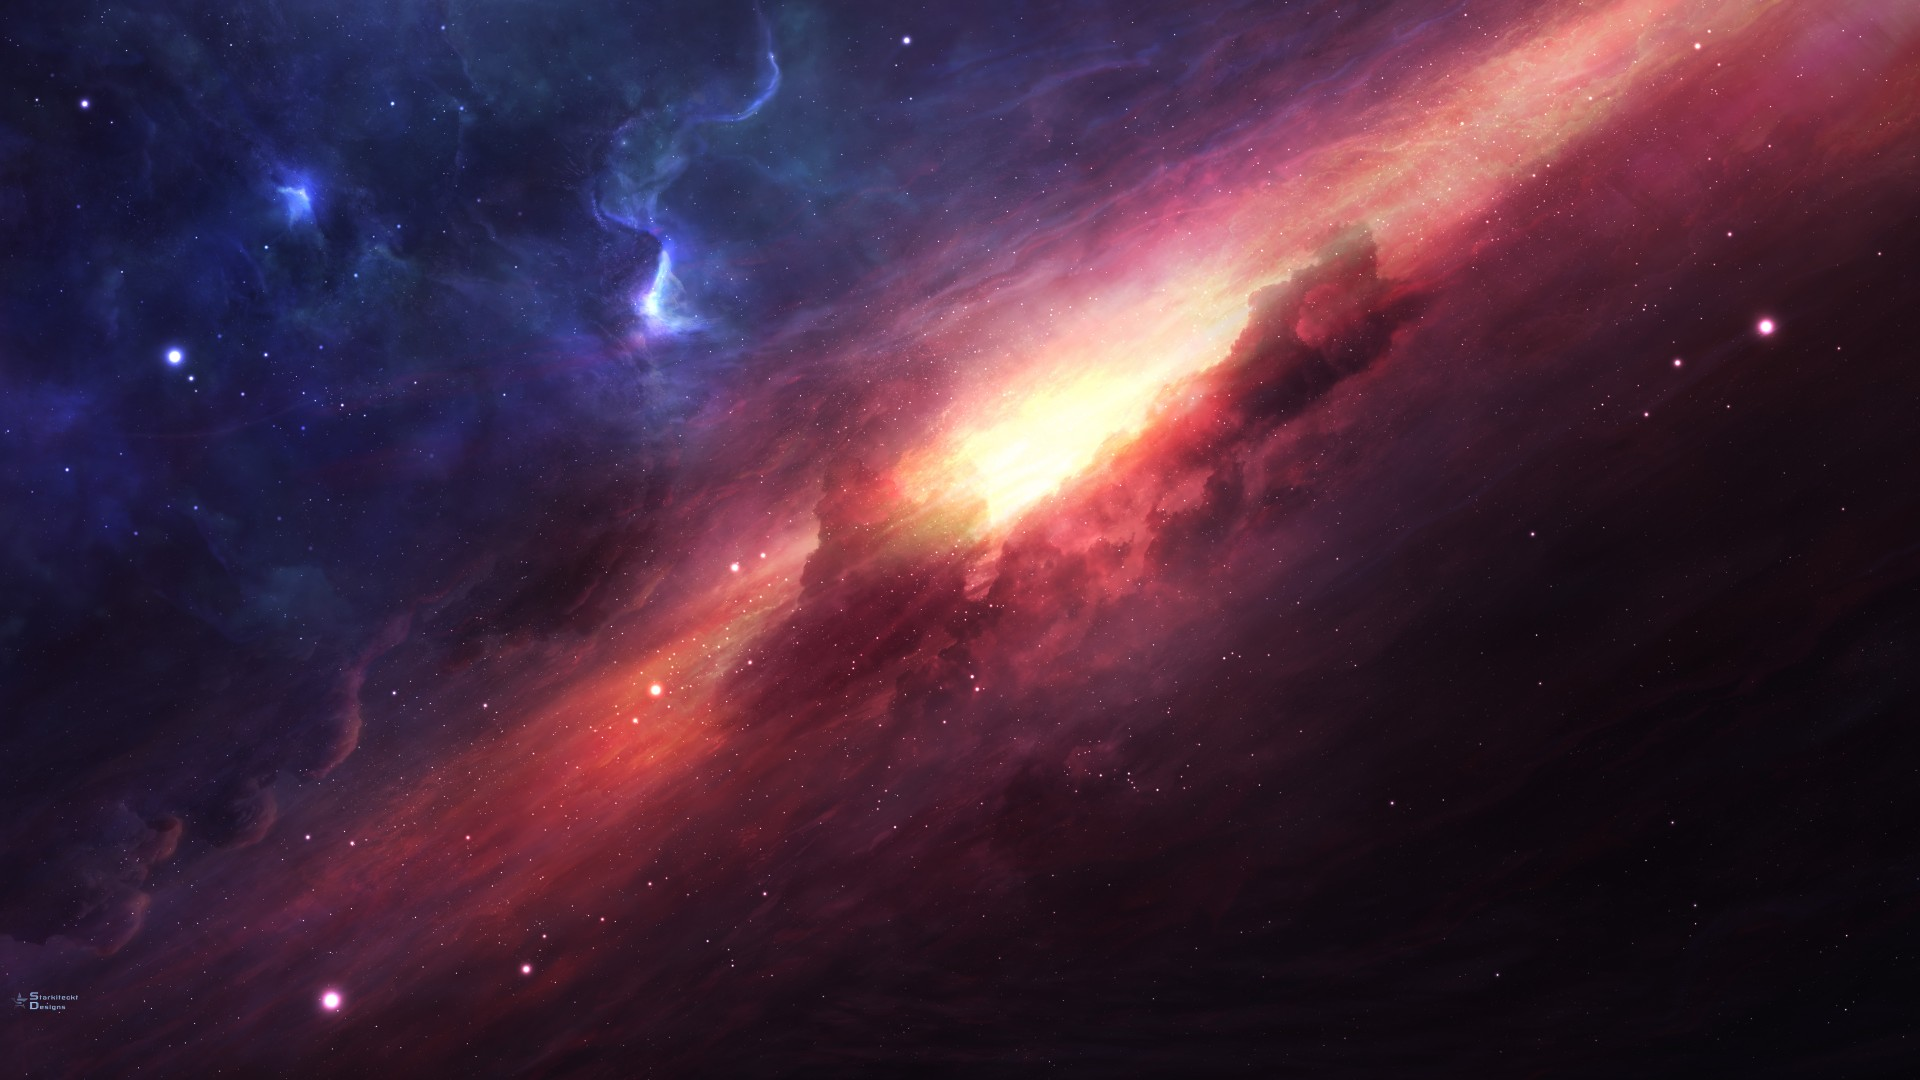 Sweet Wallpapers For Iphone Digital Space Universe 4k 8k Wallpapers Hd Wallpapers